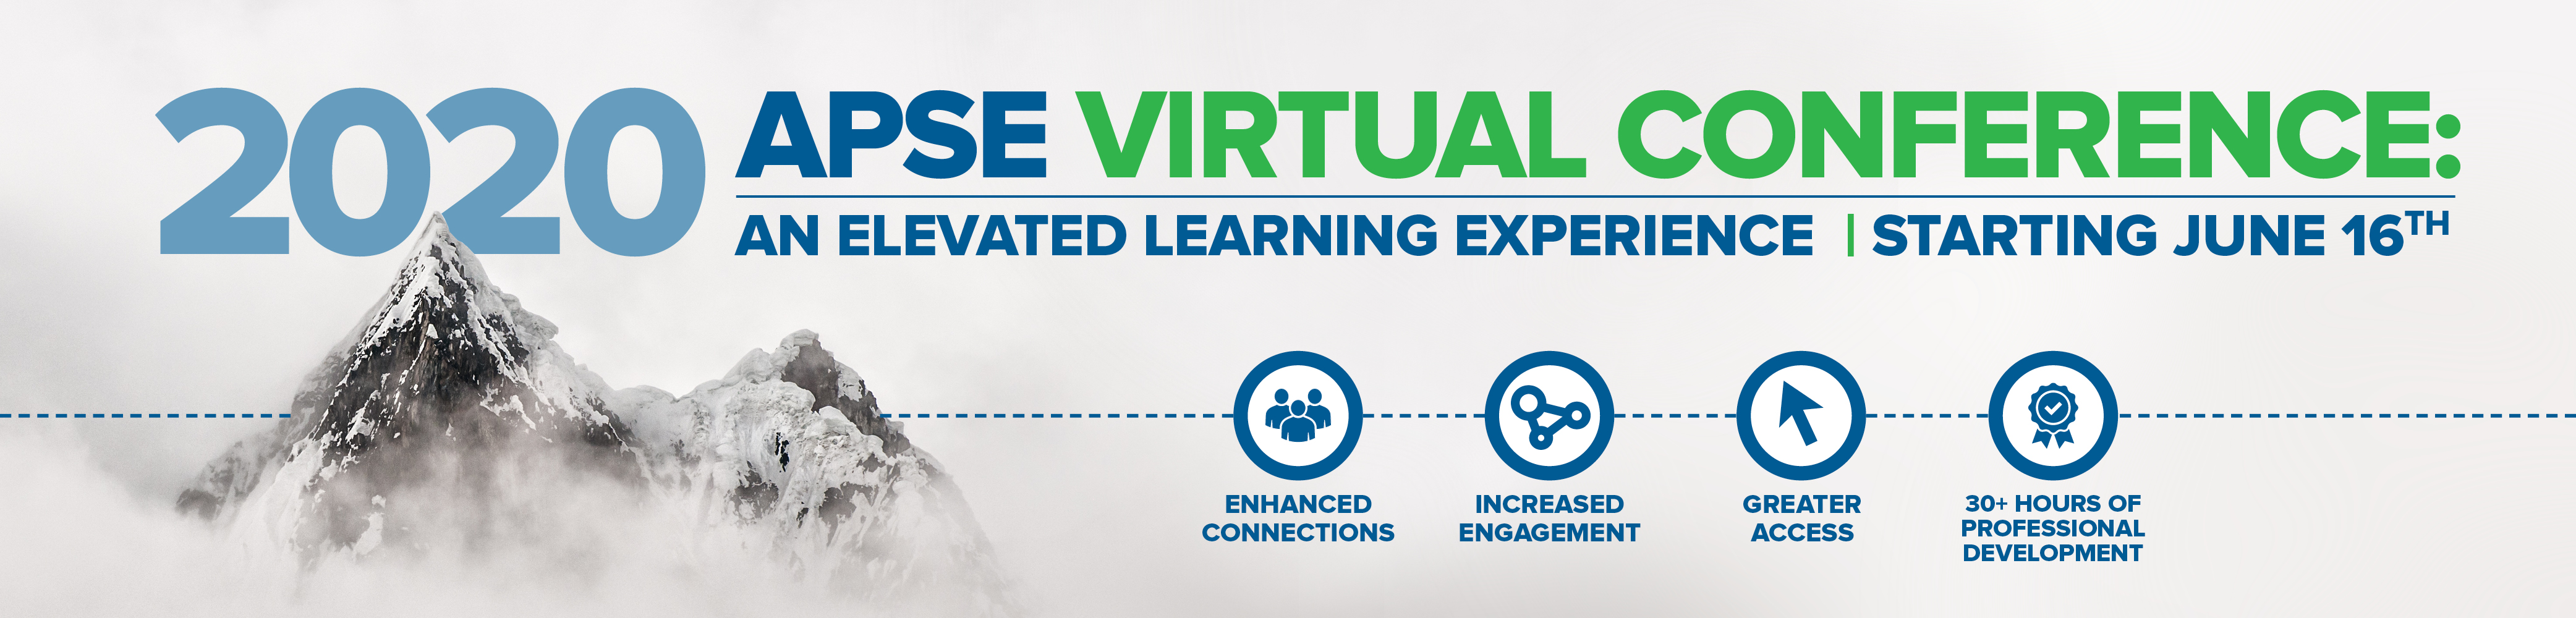 2020 APSE Virtual Conference: An Elevated Learning Experience. Starting June 16. A mountain in clouds.